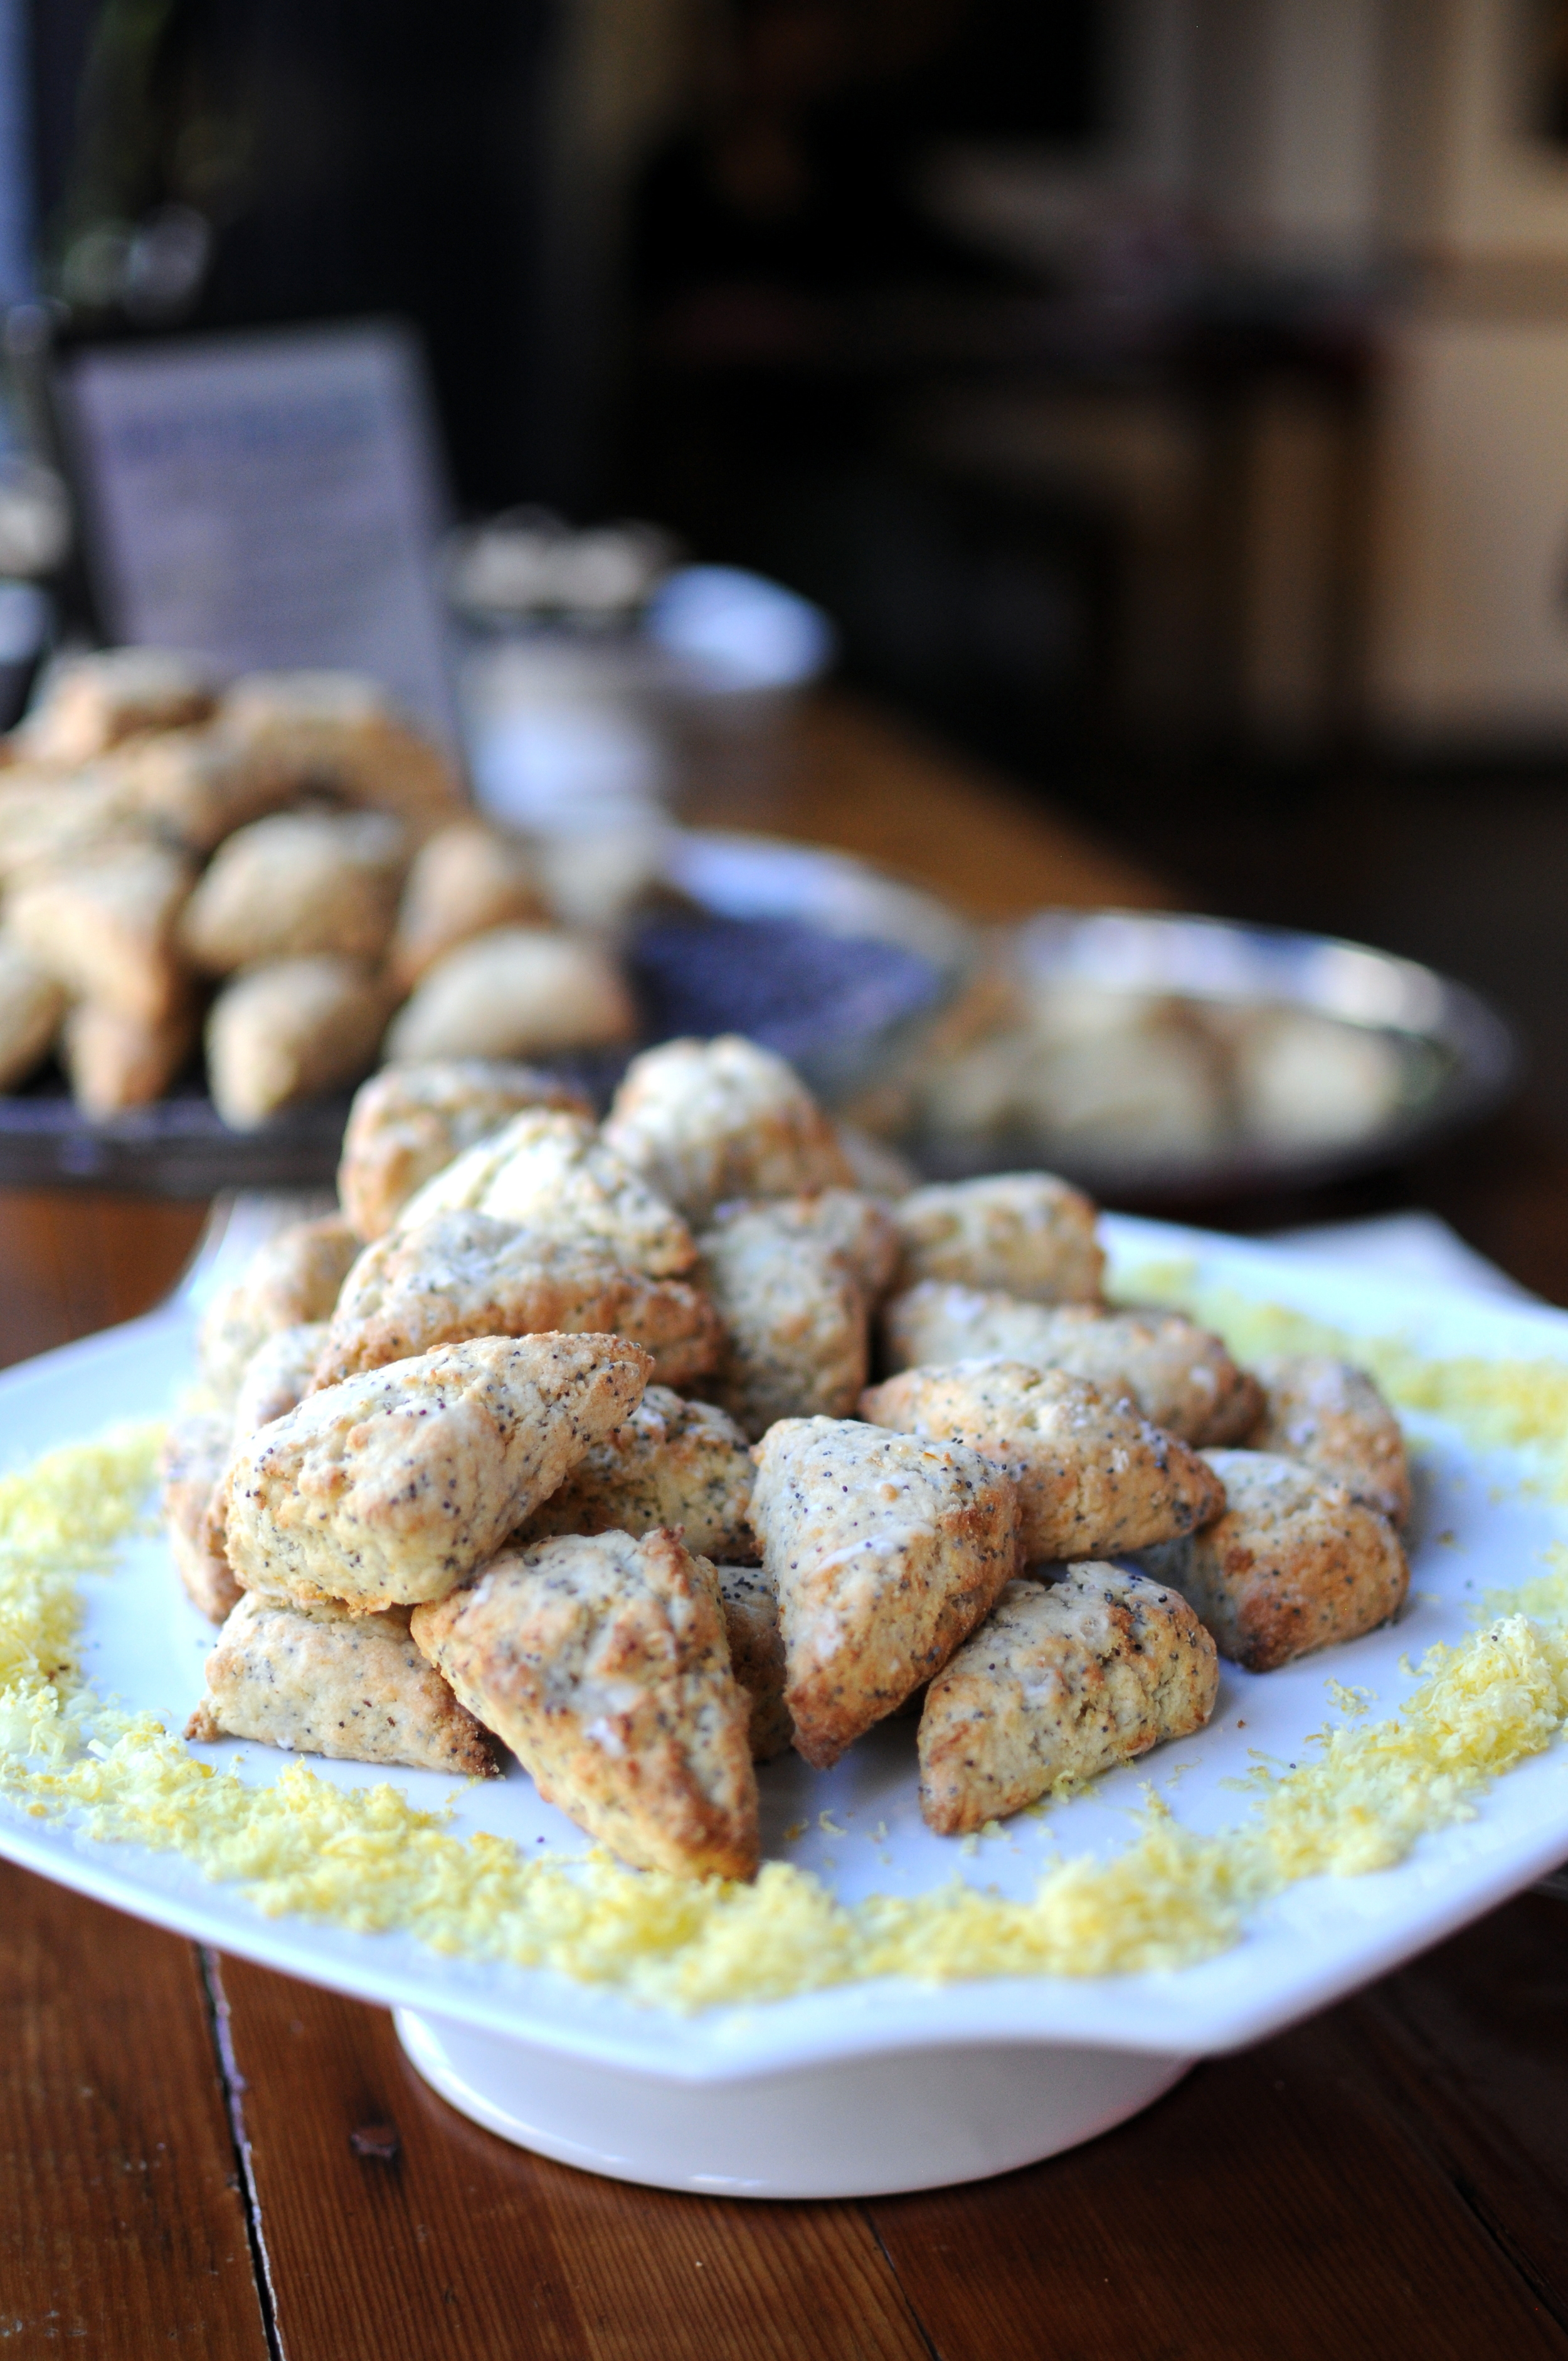 Savory and sweet scones by Jacqueline